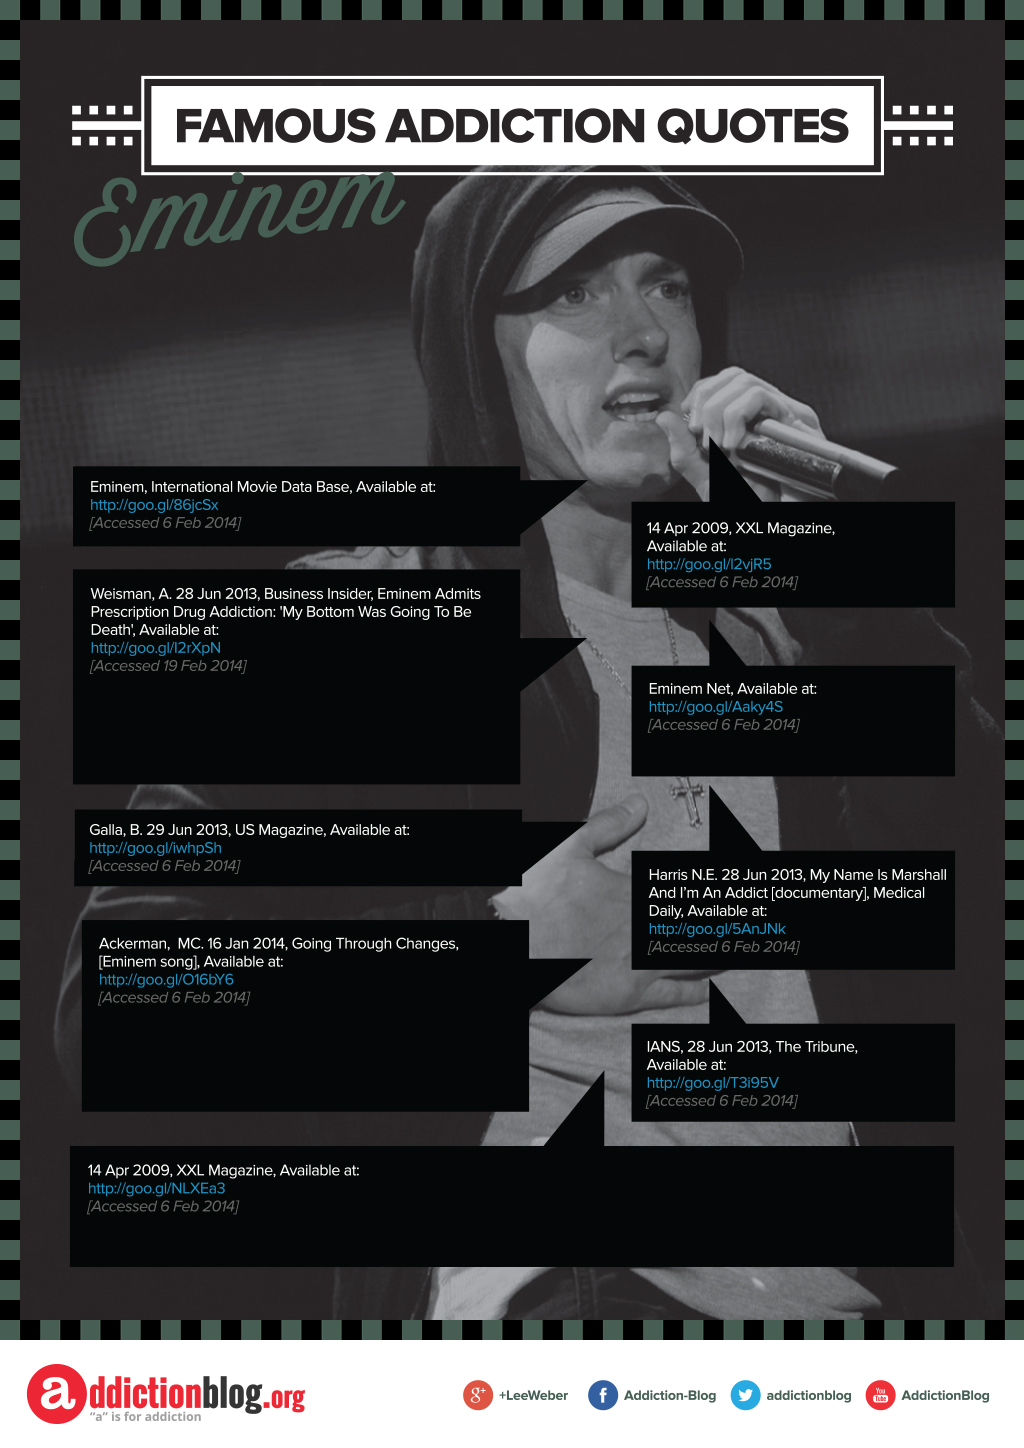 Eminem\'s quotes on drugs and addiction recovery (INFOGRAPHIC)